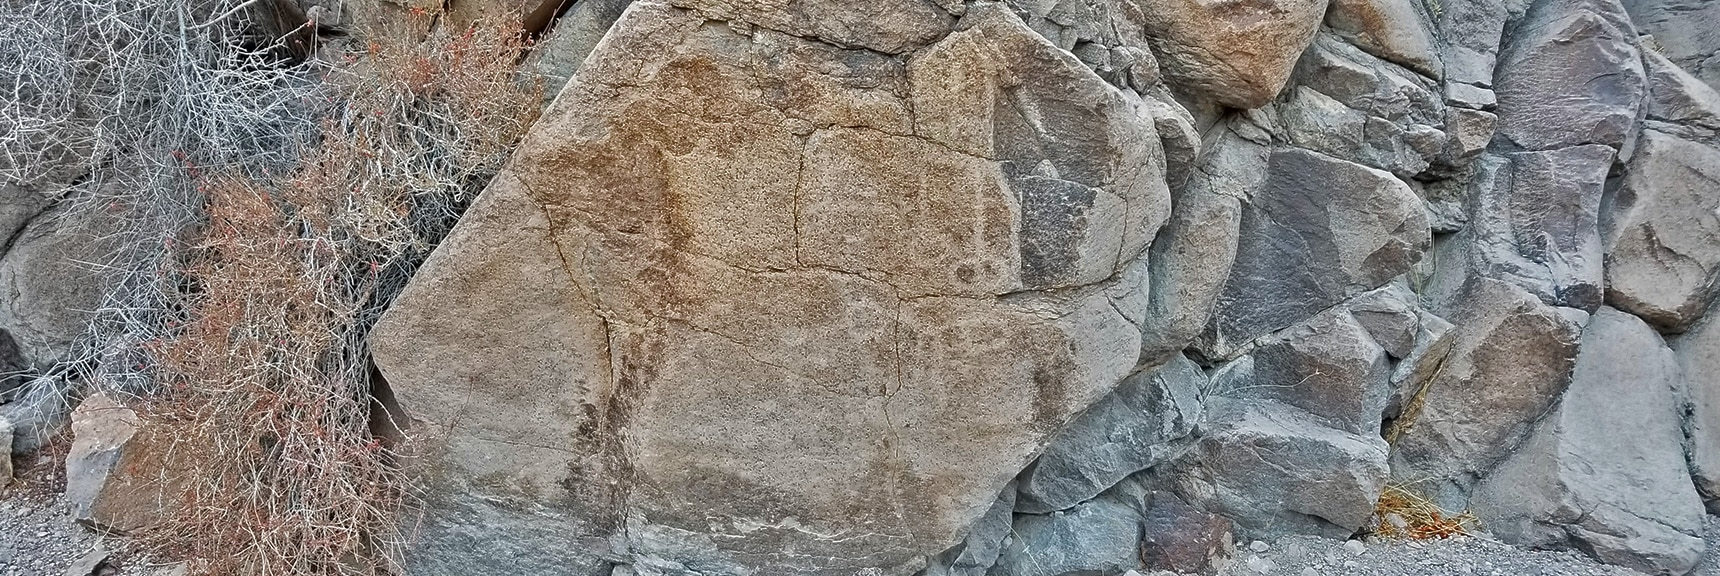 Looks Like a Welcome Sign to the Petroglyph Area Right Before the Huge Dry Waterfall | Petroglyph Canyon | Sloan Canyon National Conservation Area, Nevada